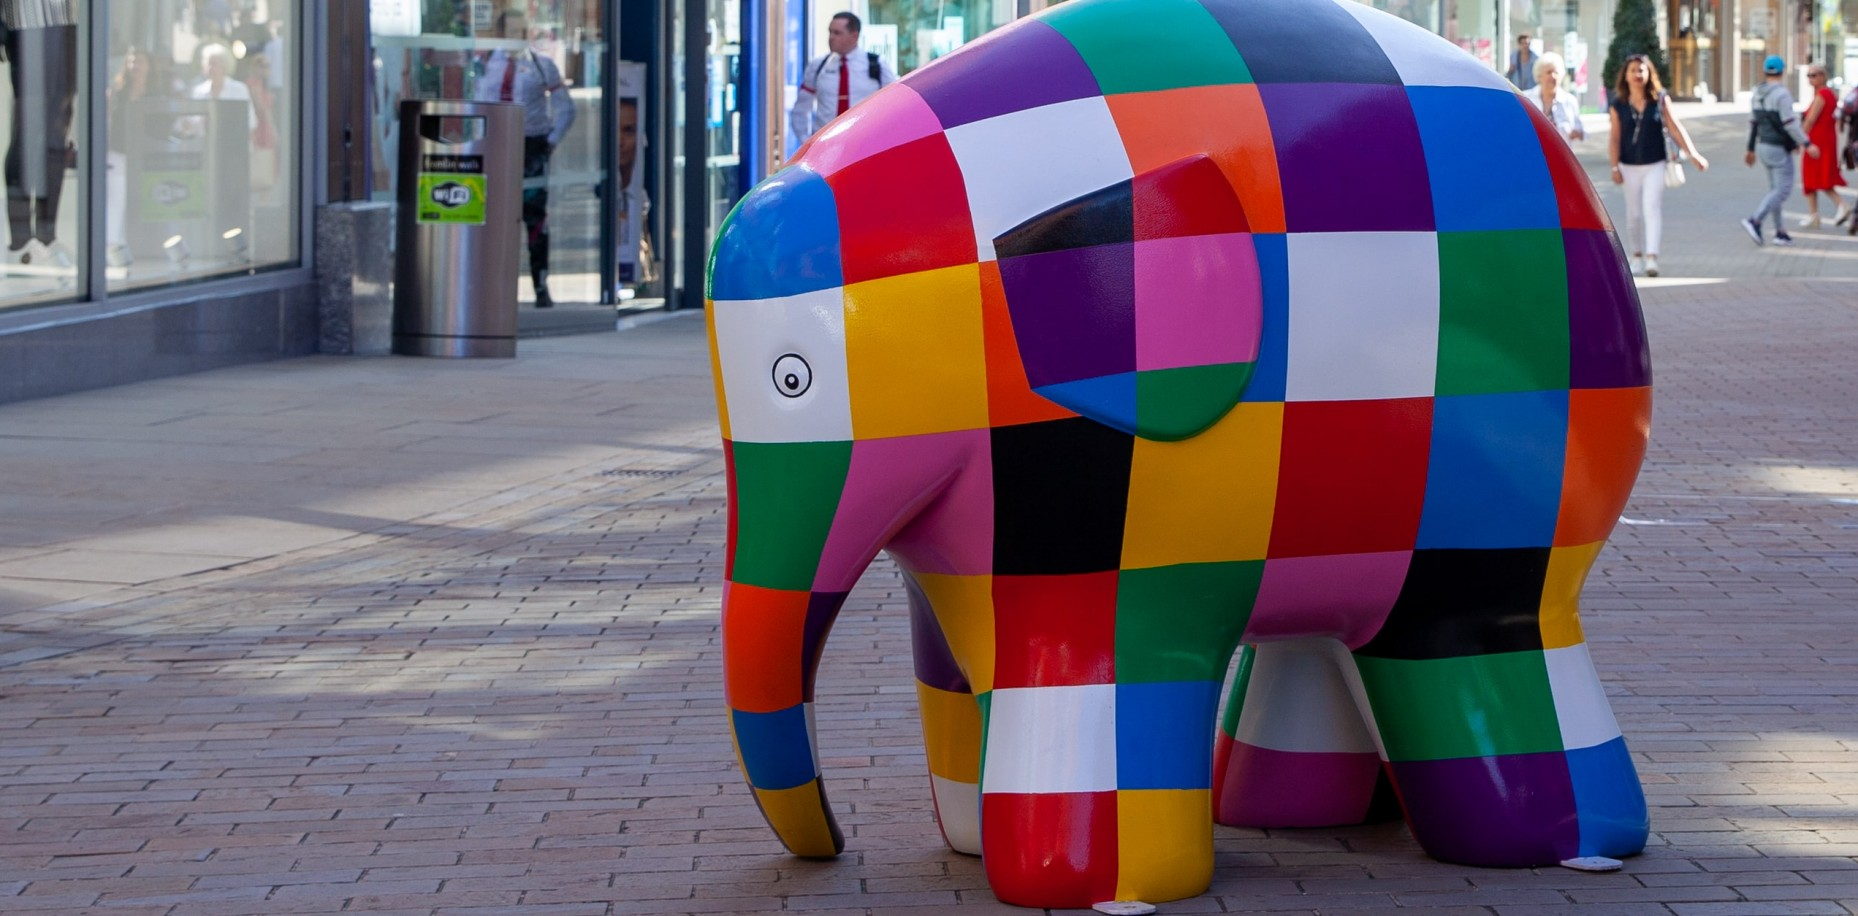 New date announced for Elmer's Big Heart of Kent Parade